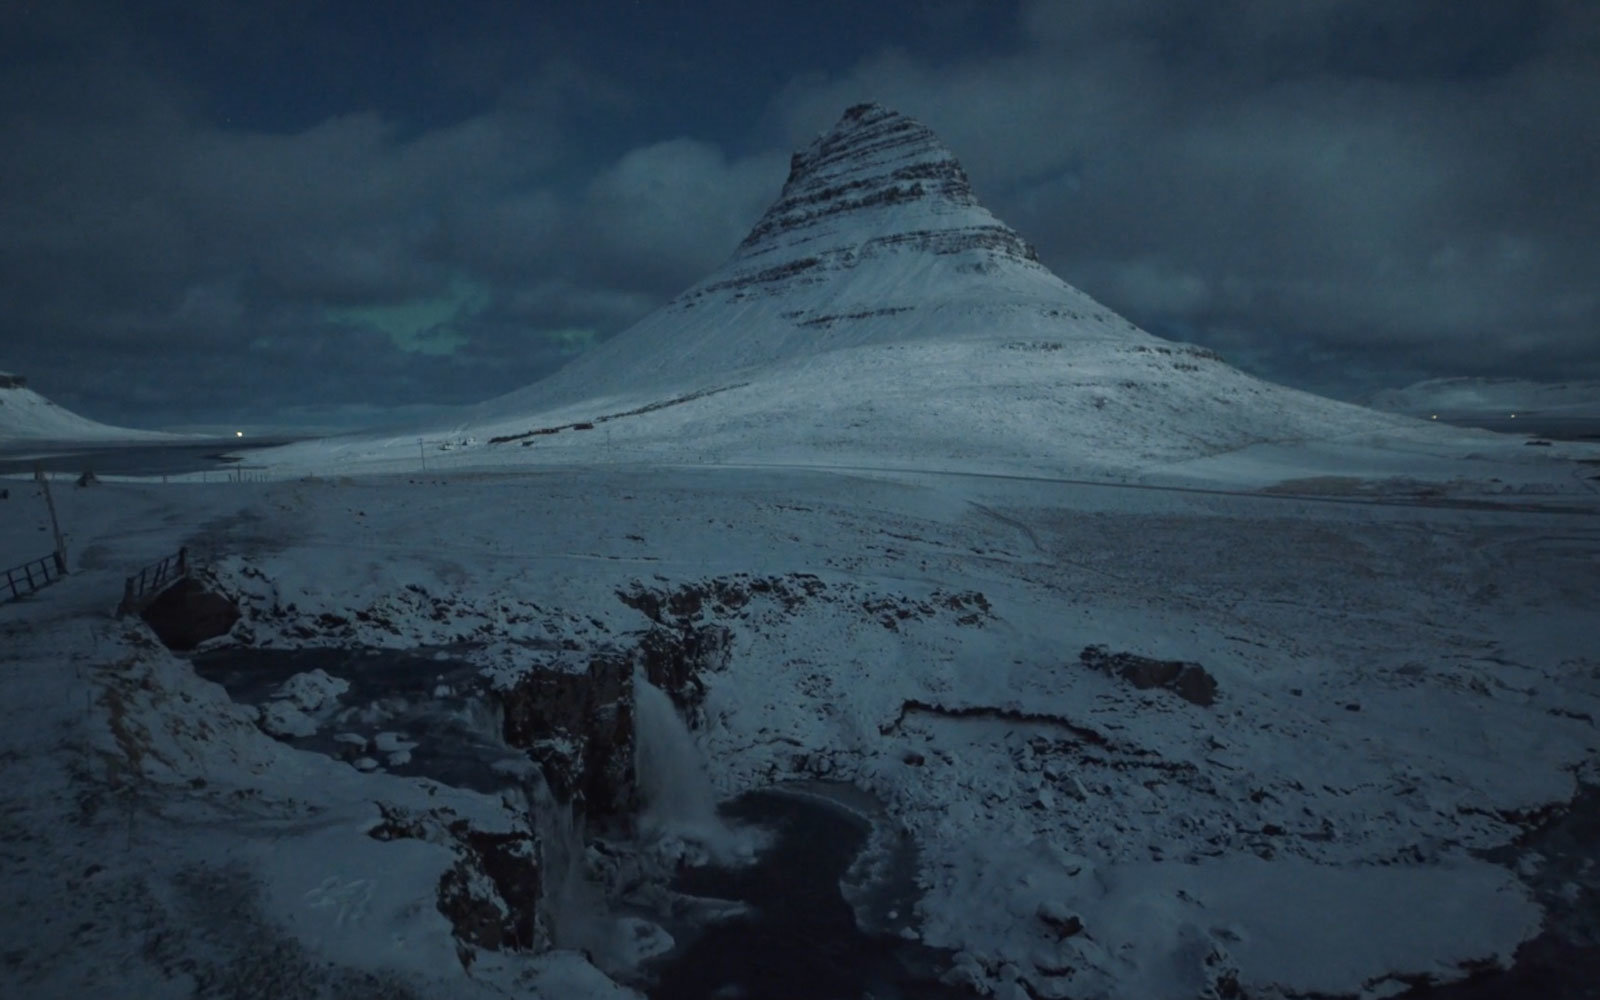 Iceland's Landscapes Are Even More Breathtaking Under a Full Moon